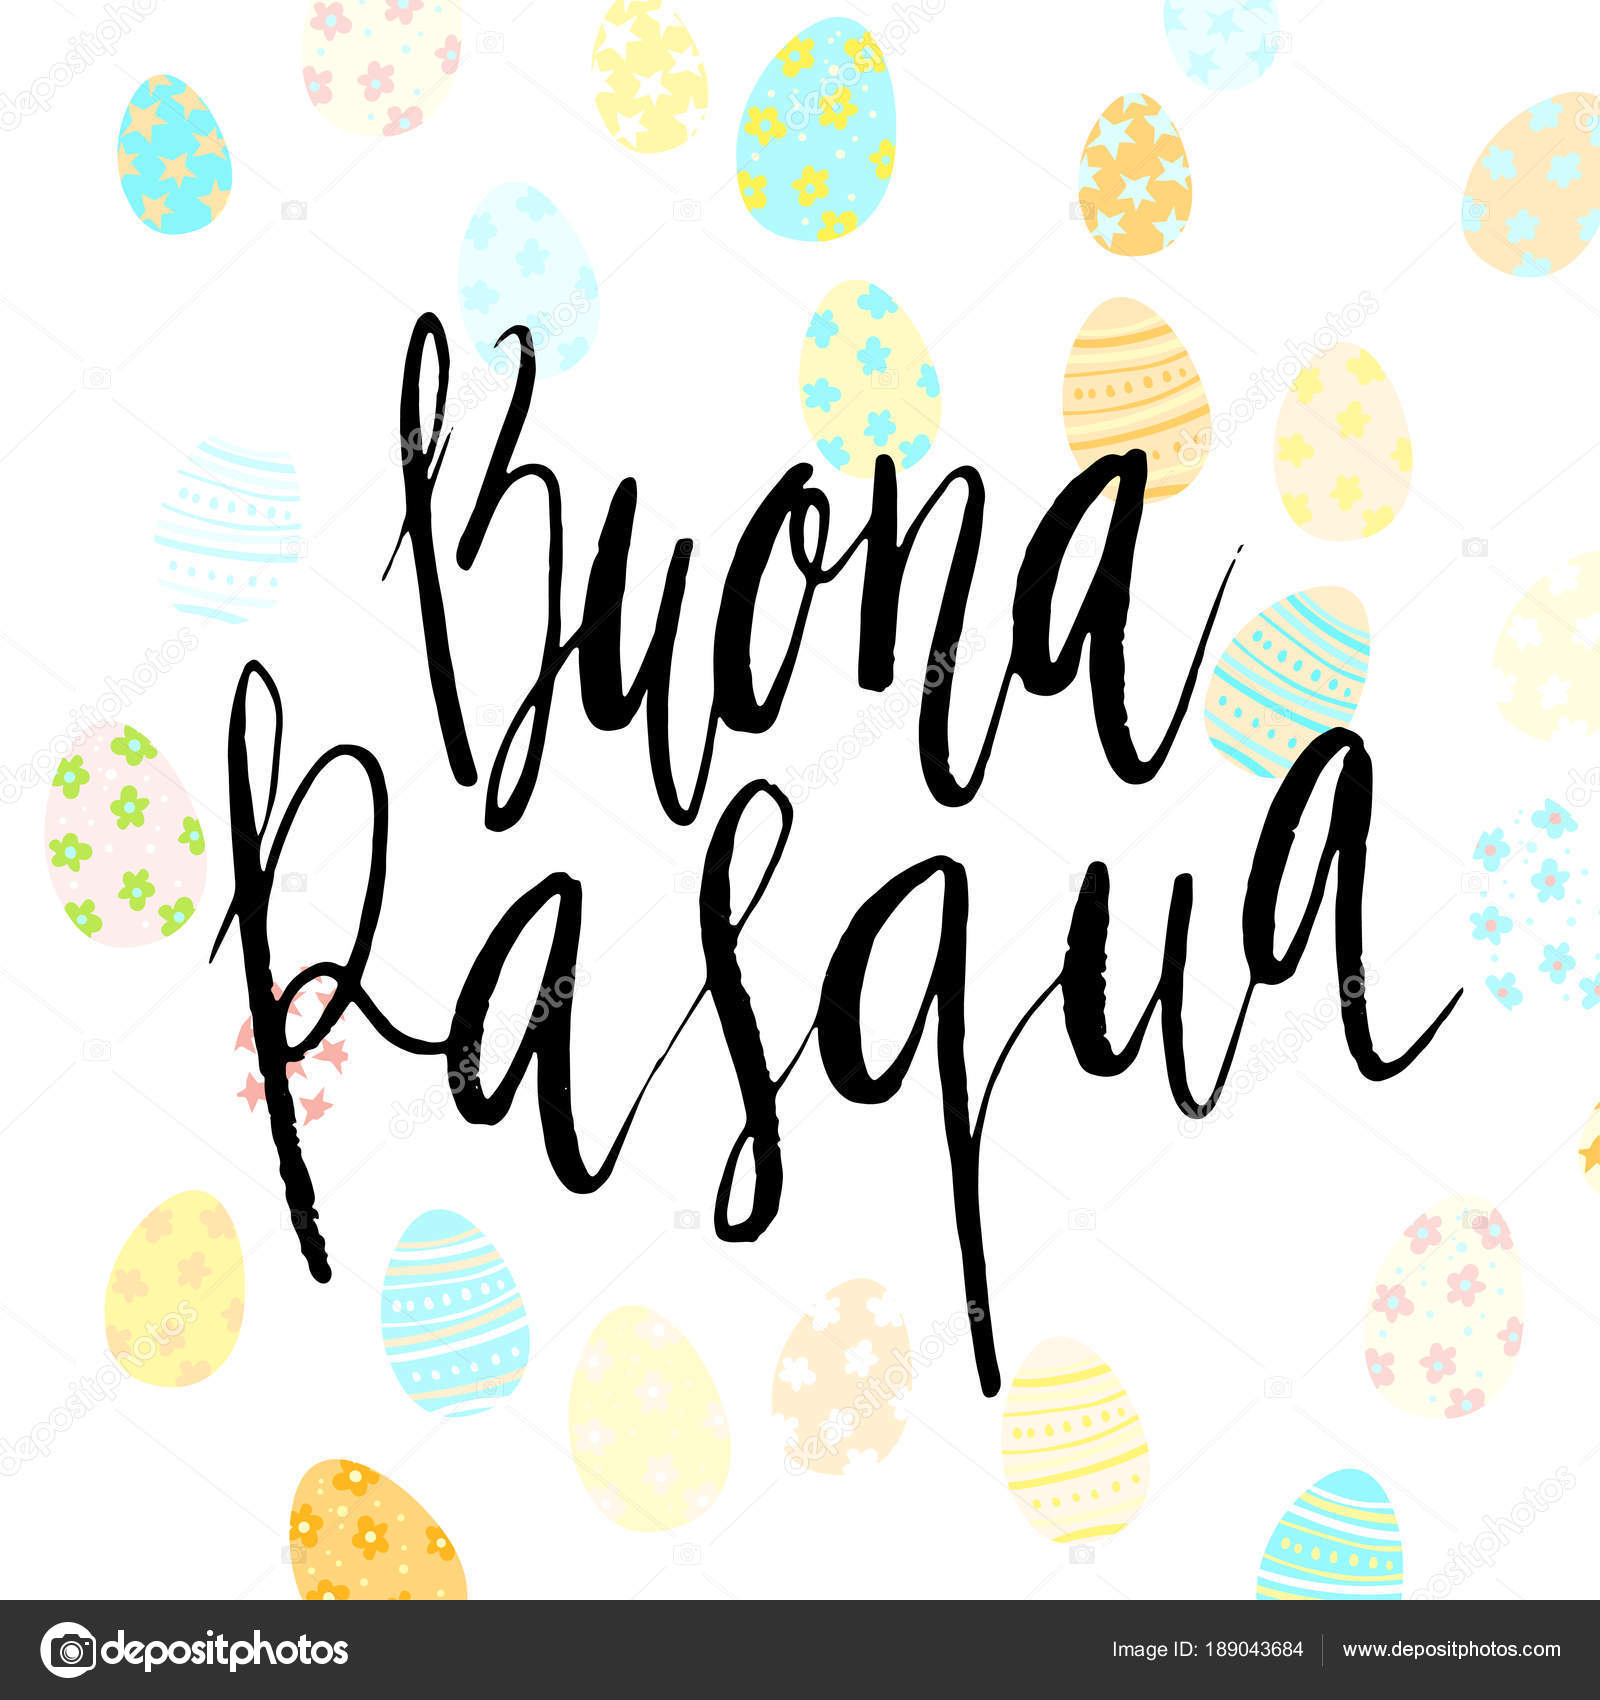 Happy Easter Buona Pasqua In Italian Hand Written Brush Lettering